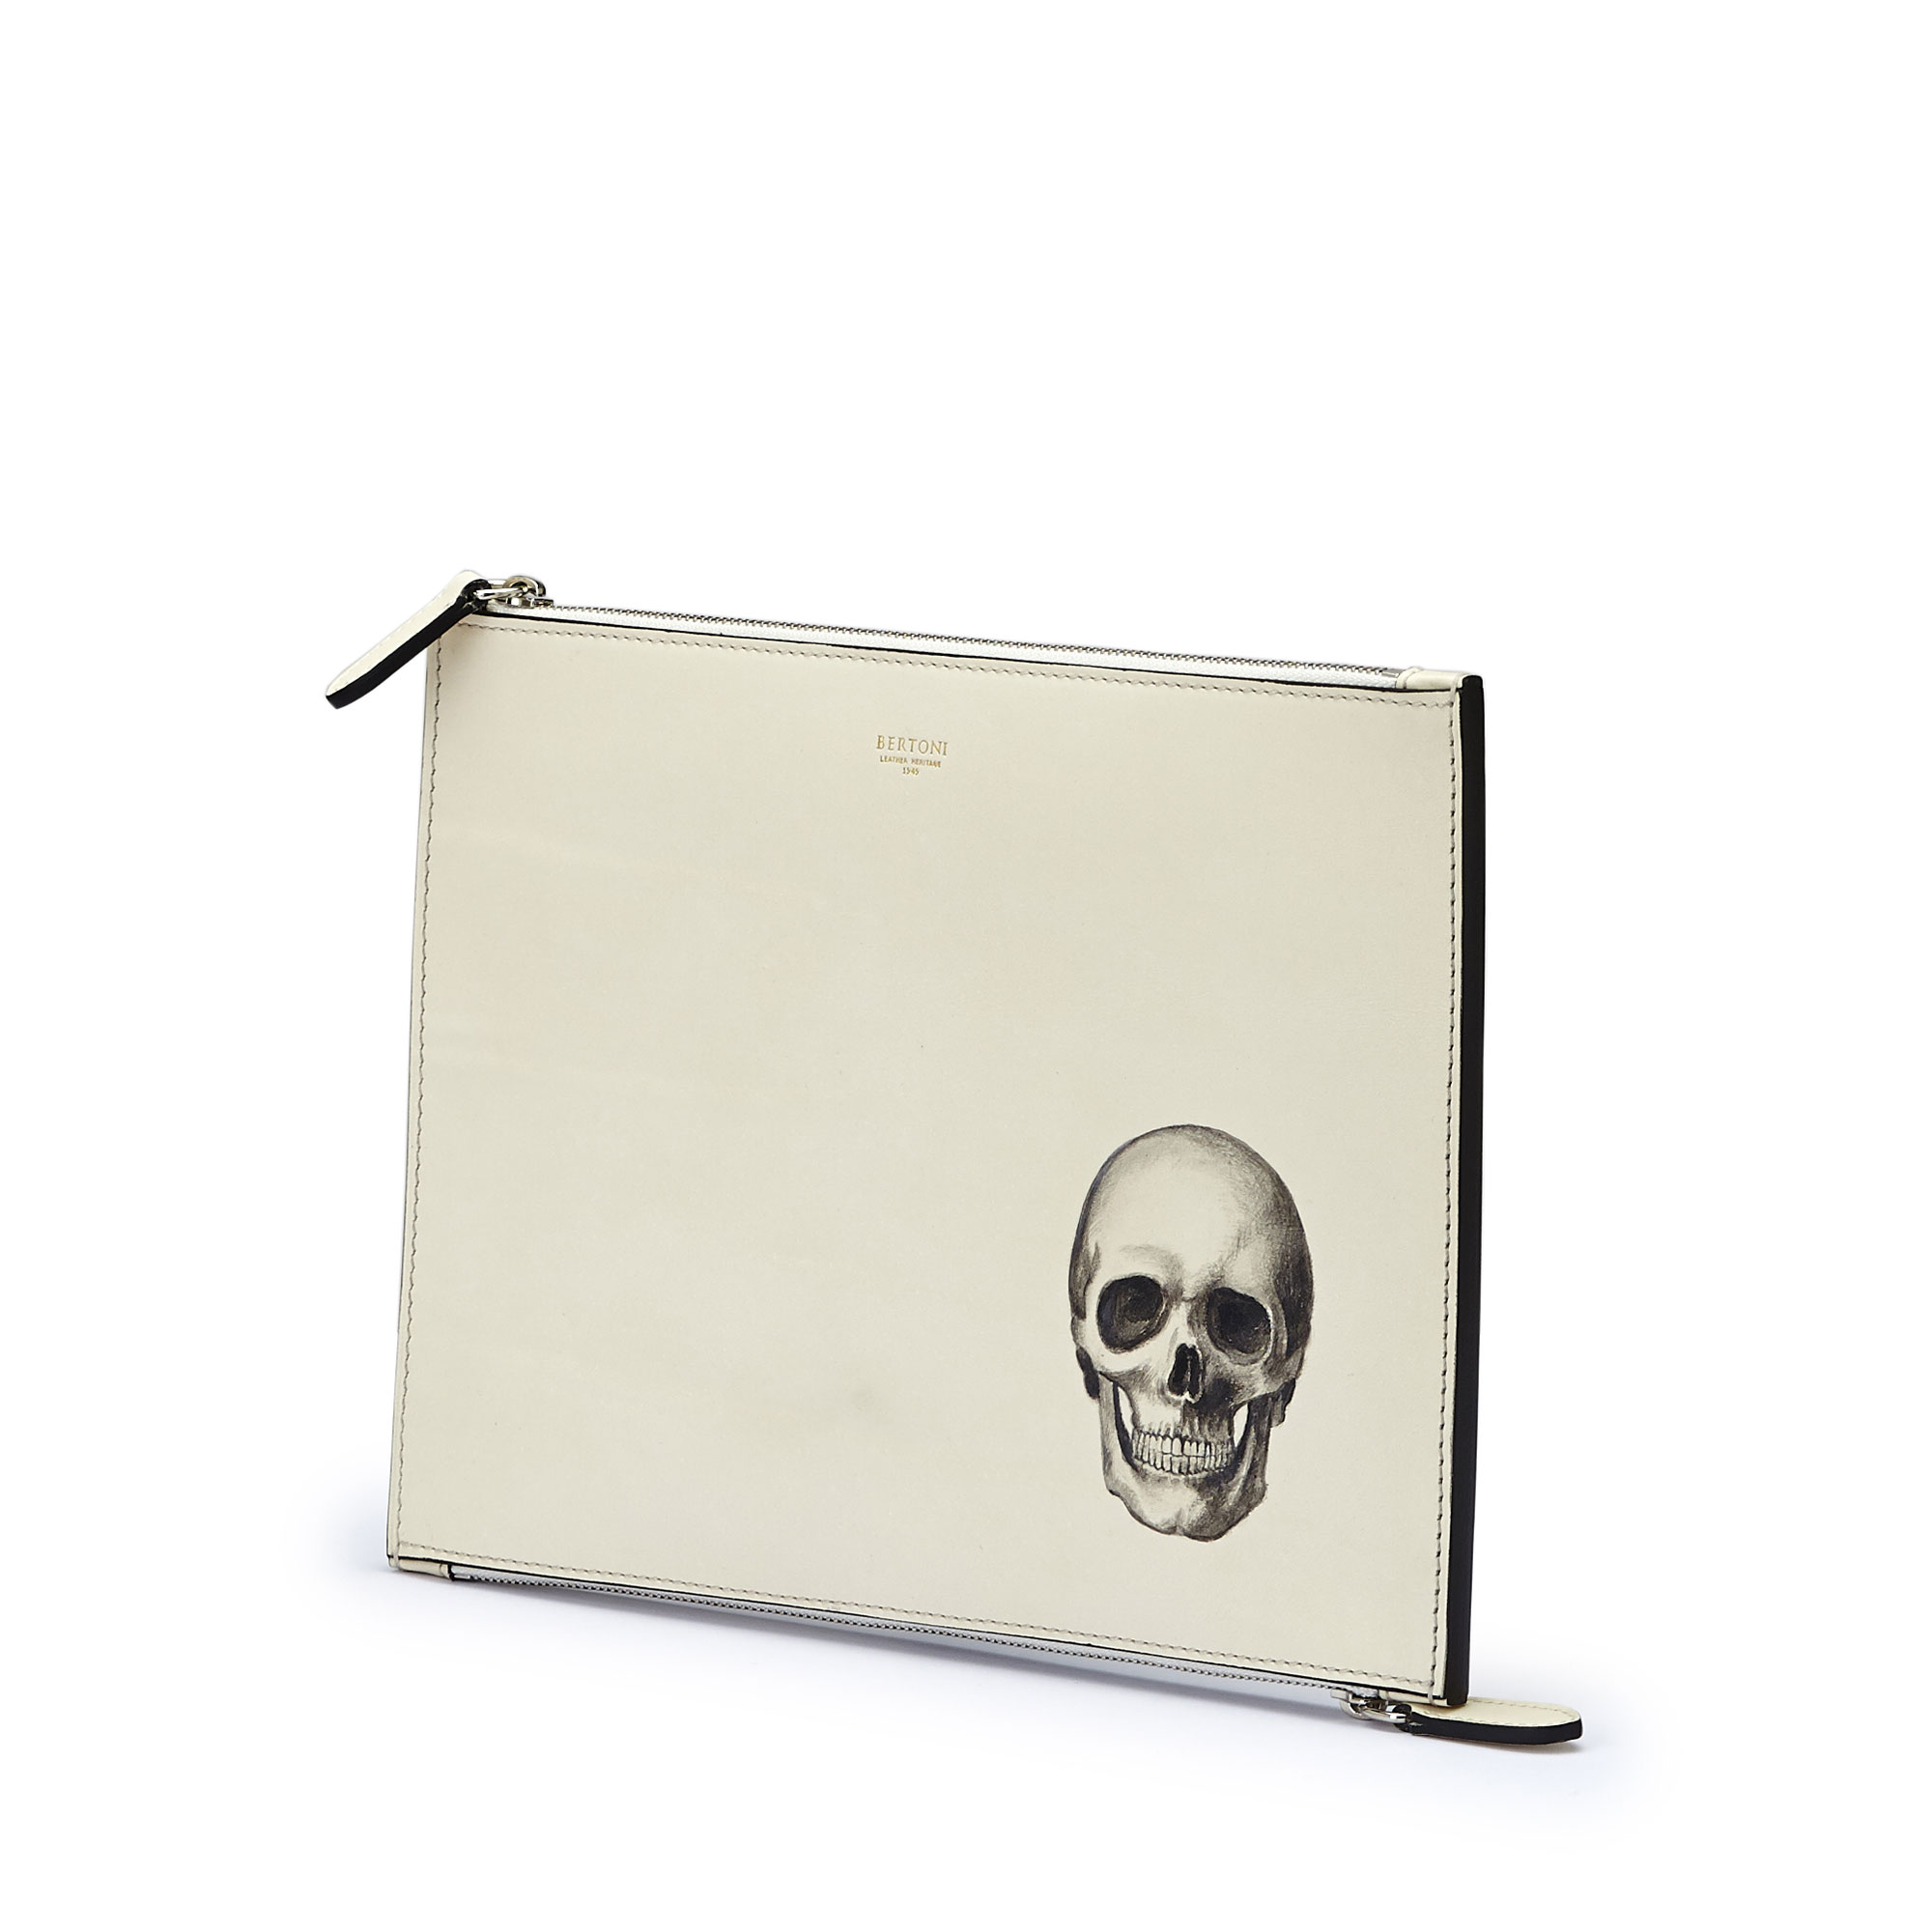 The Ivory with skull french calf Zip Pouch by Bertoni 1949 02